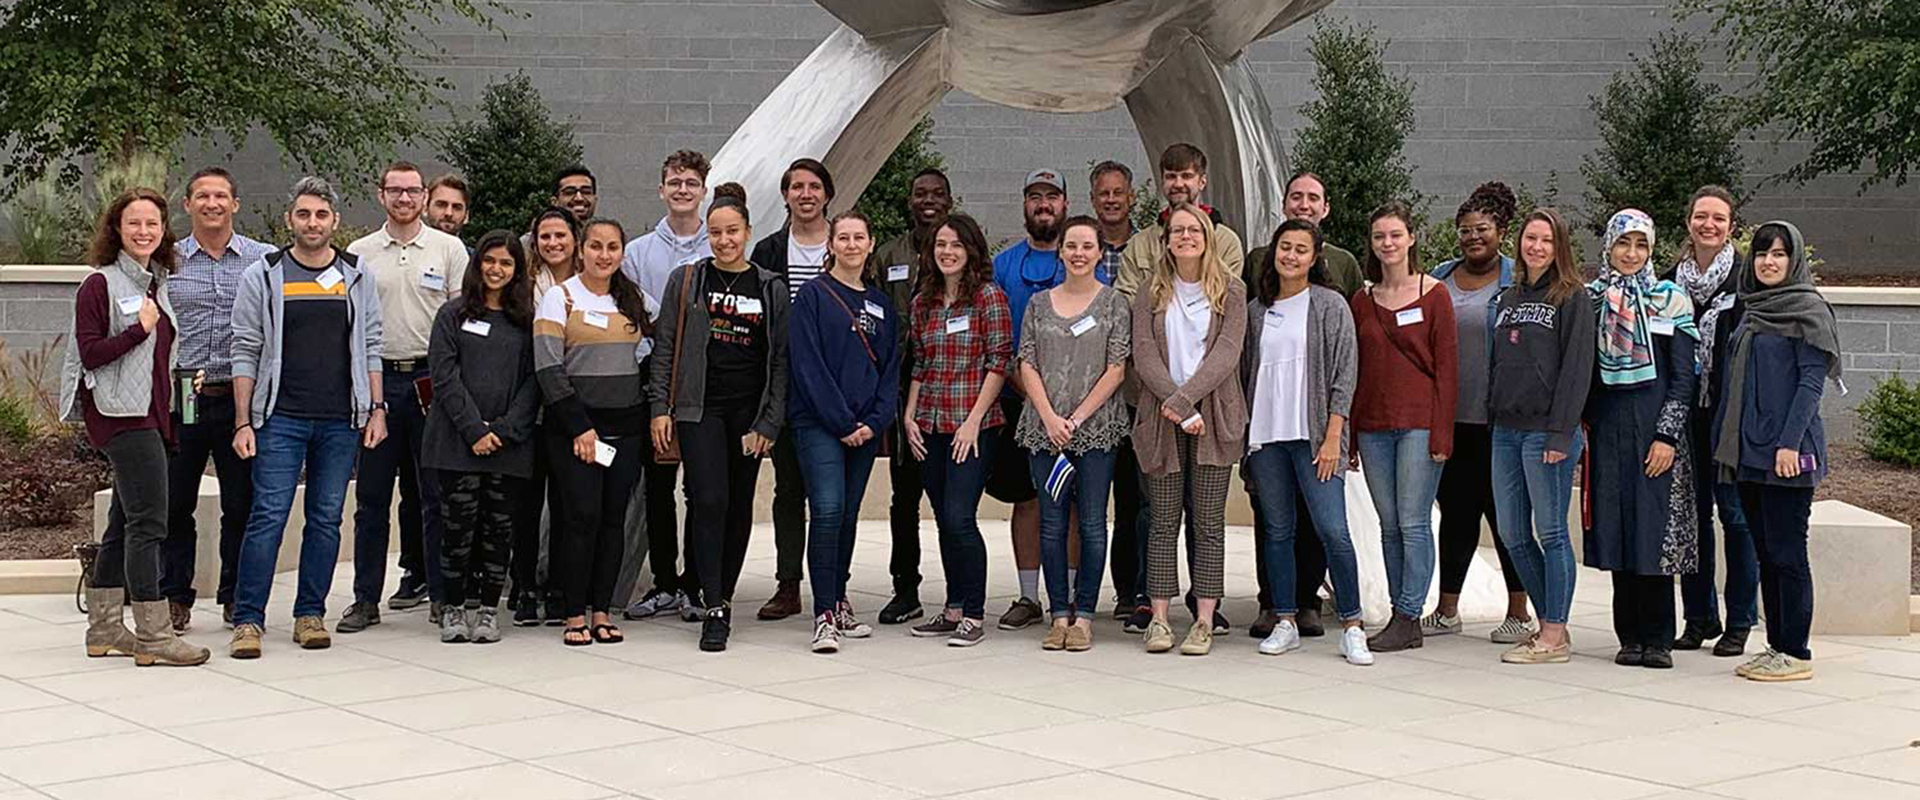 The LEED Lab course, led by Traci Rose Rider, recently won an NC State Sustainability Award for 2020 in the Innovation and Impact Category.